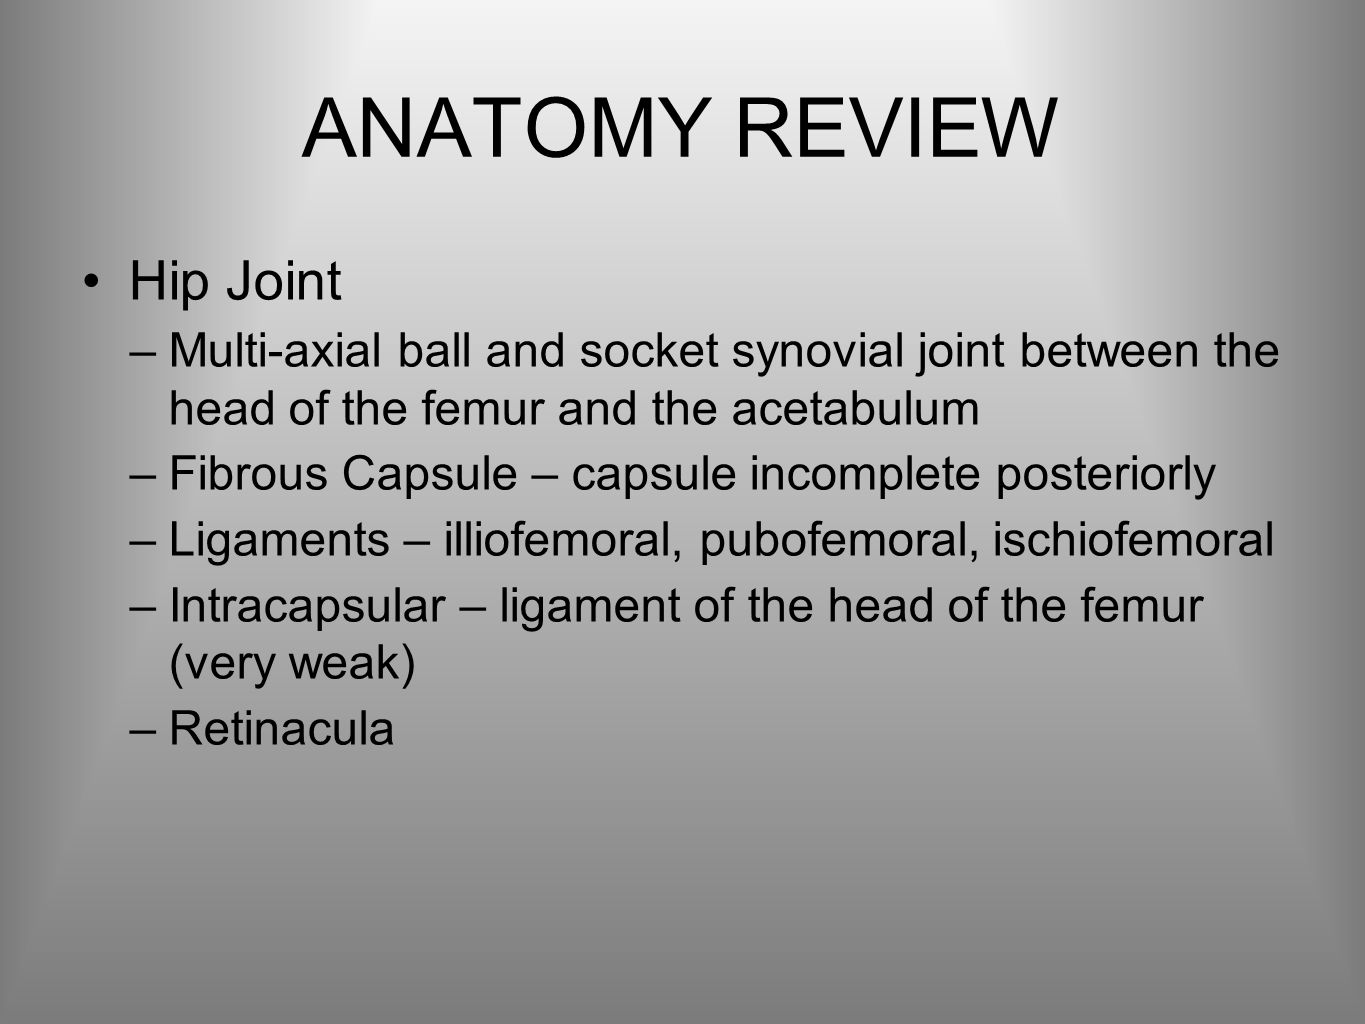 ANATOMY REVIEW Hip Joint –Multi-axial ball and socket synovial joint between the head of the femur and the acetabulum –Fibrous Capsule – capsule incomplete posteriorly –Ligaments – illiofemoral, pubofemoral, ischiofemoral –Intracapsular – ligament of the head of the femur (very weak) –Retinacula